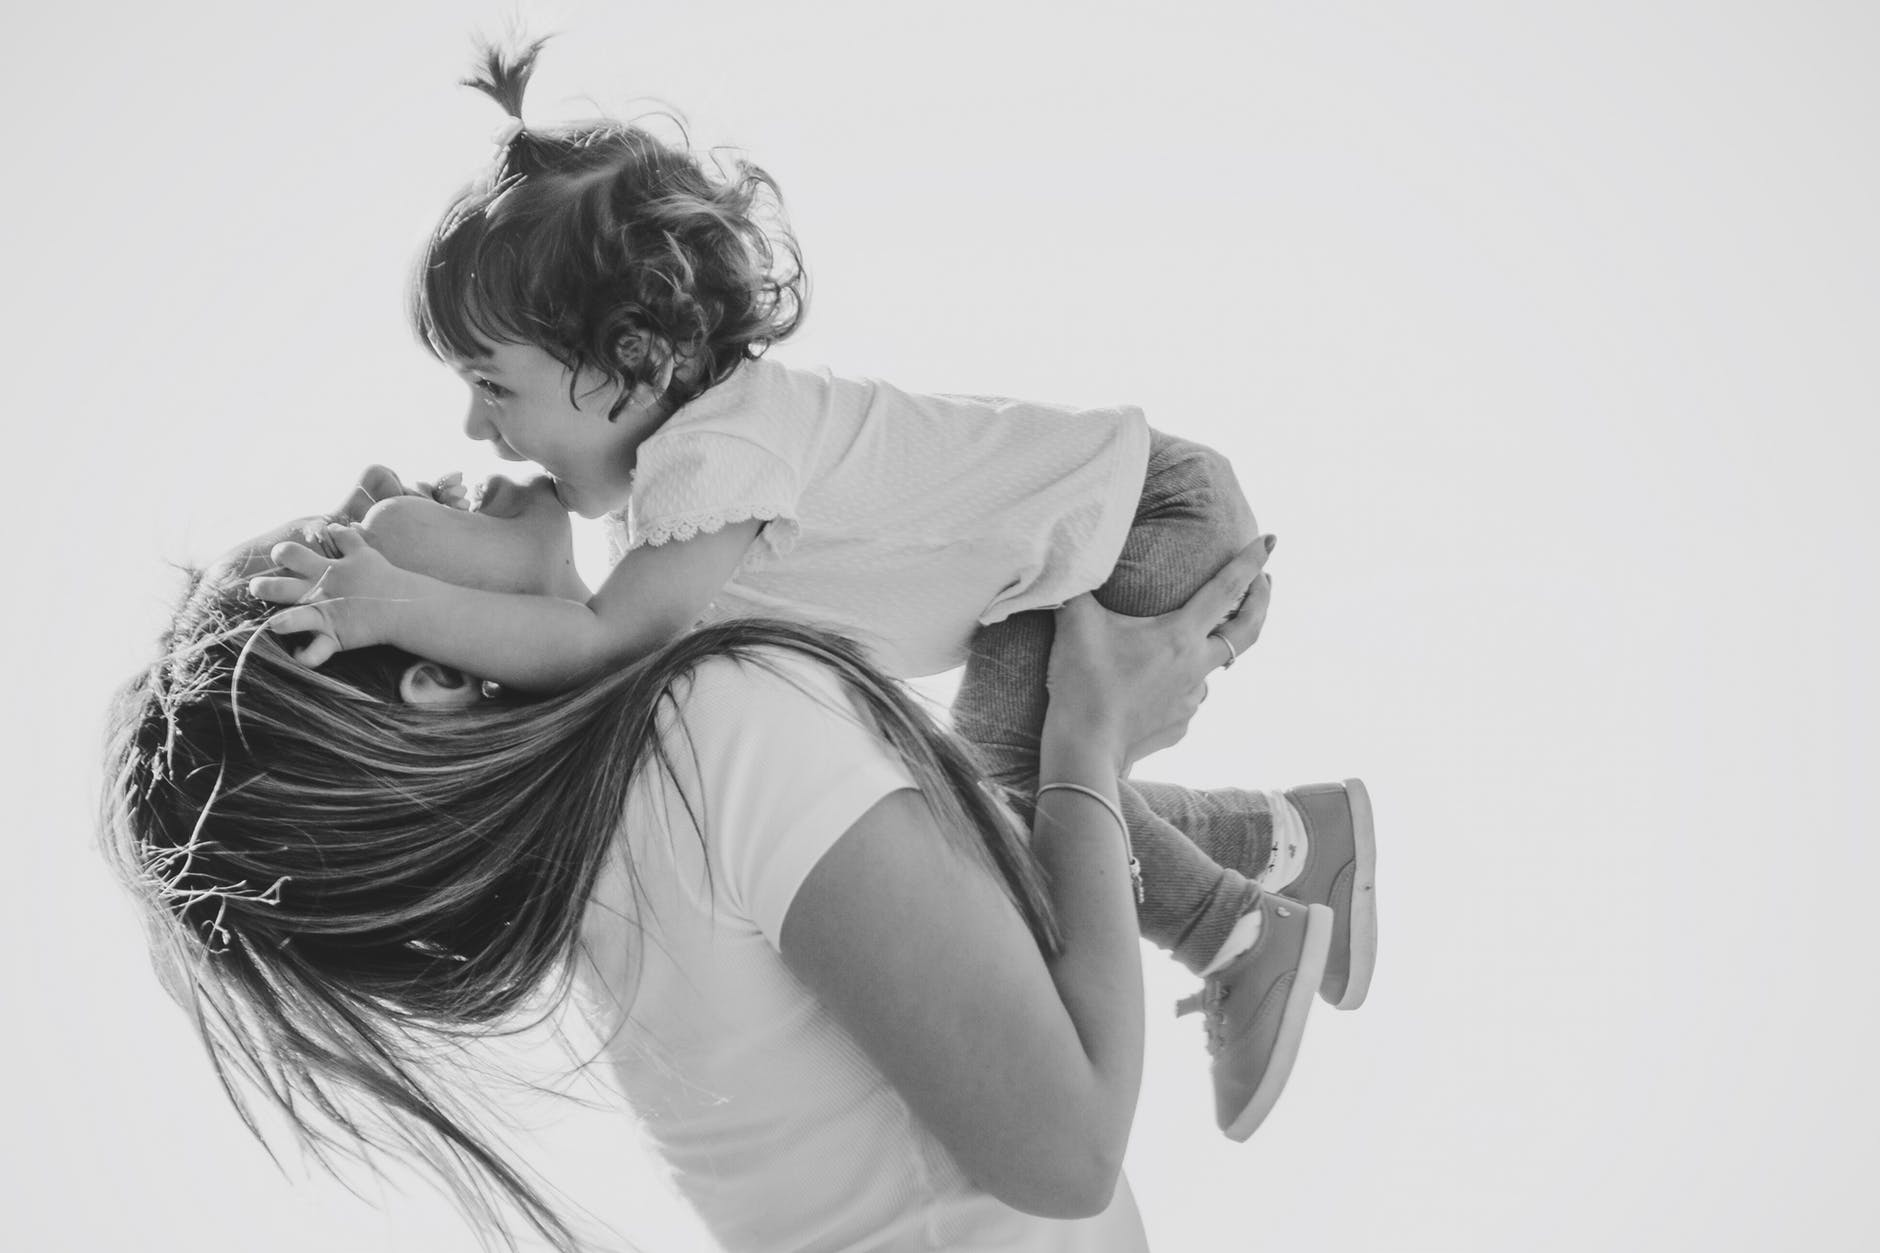 photo of woman holding her child